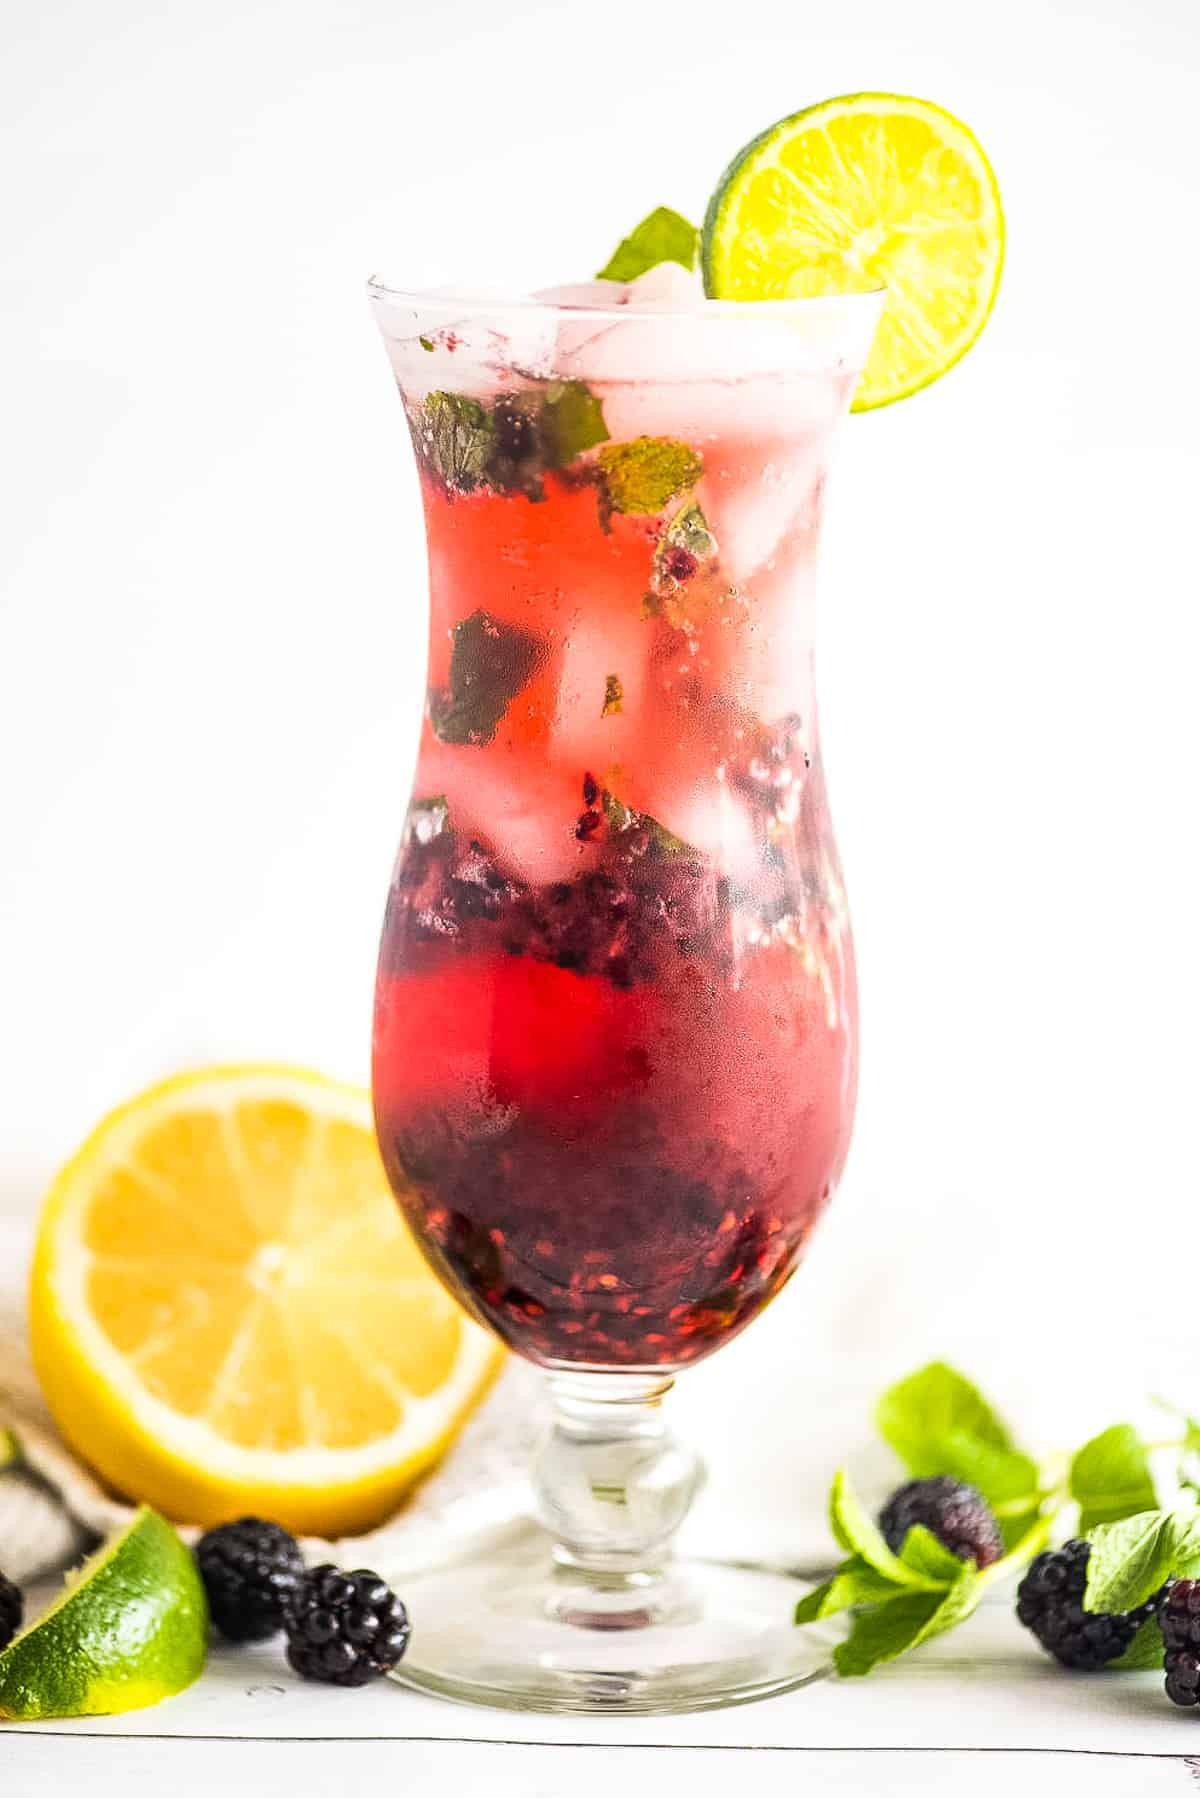 A tall glass with a blackberry mojito garnish with lime